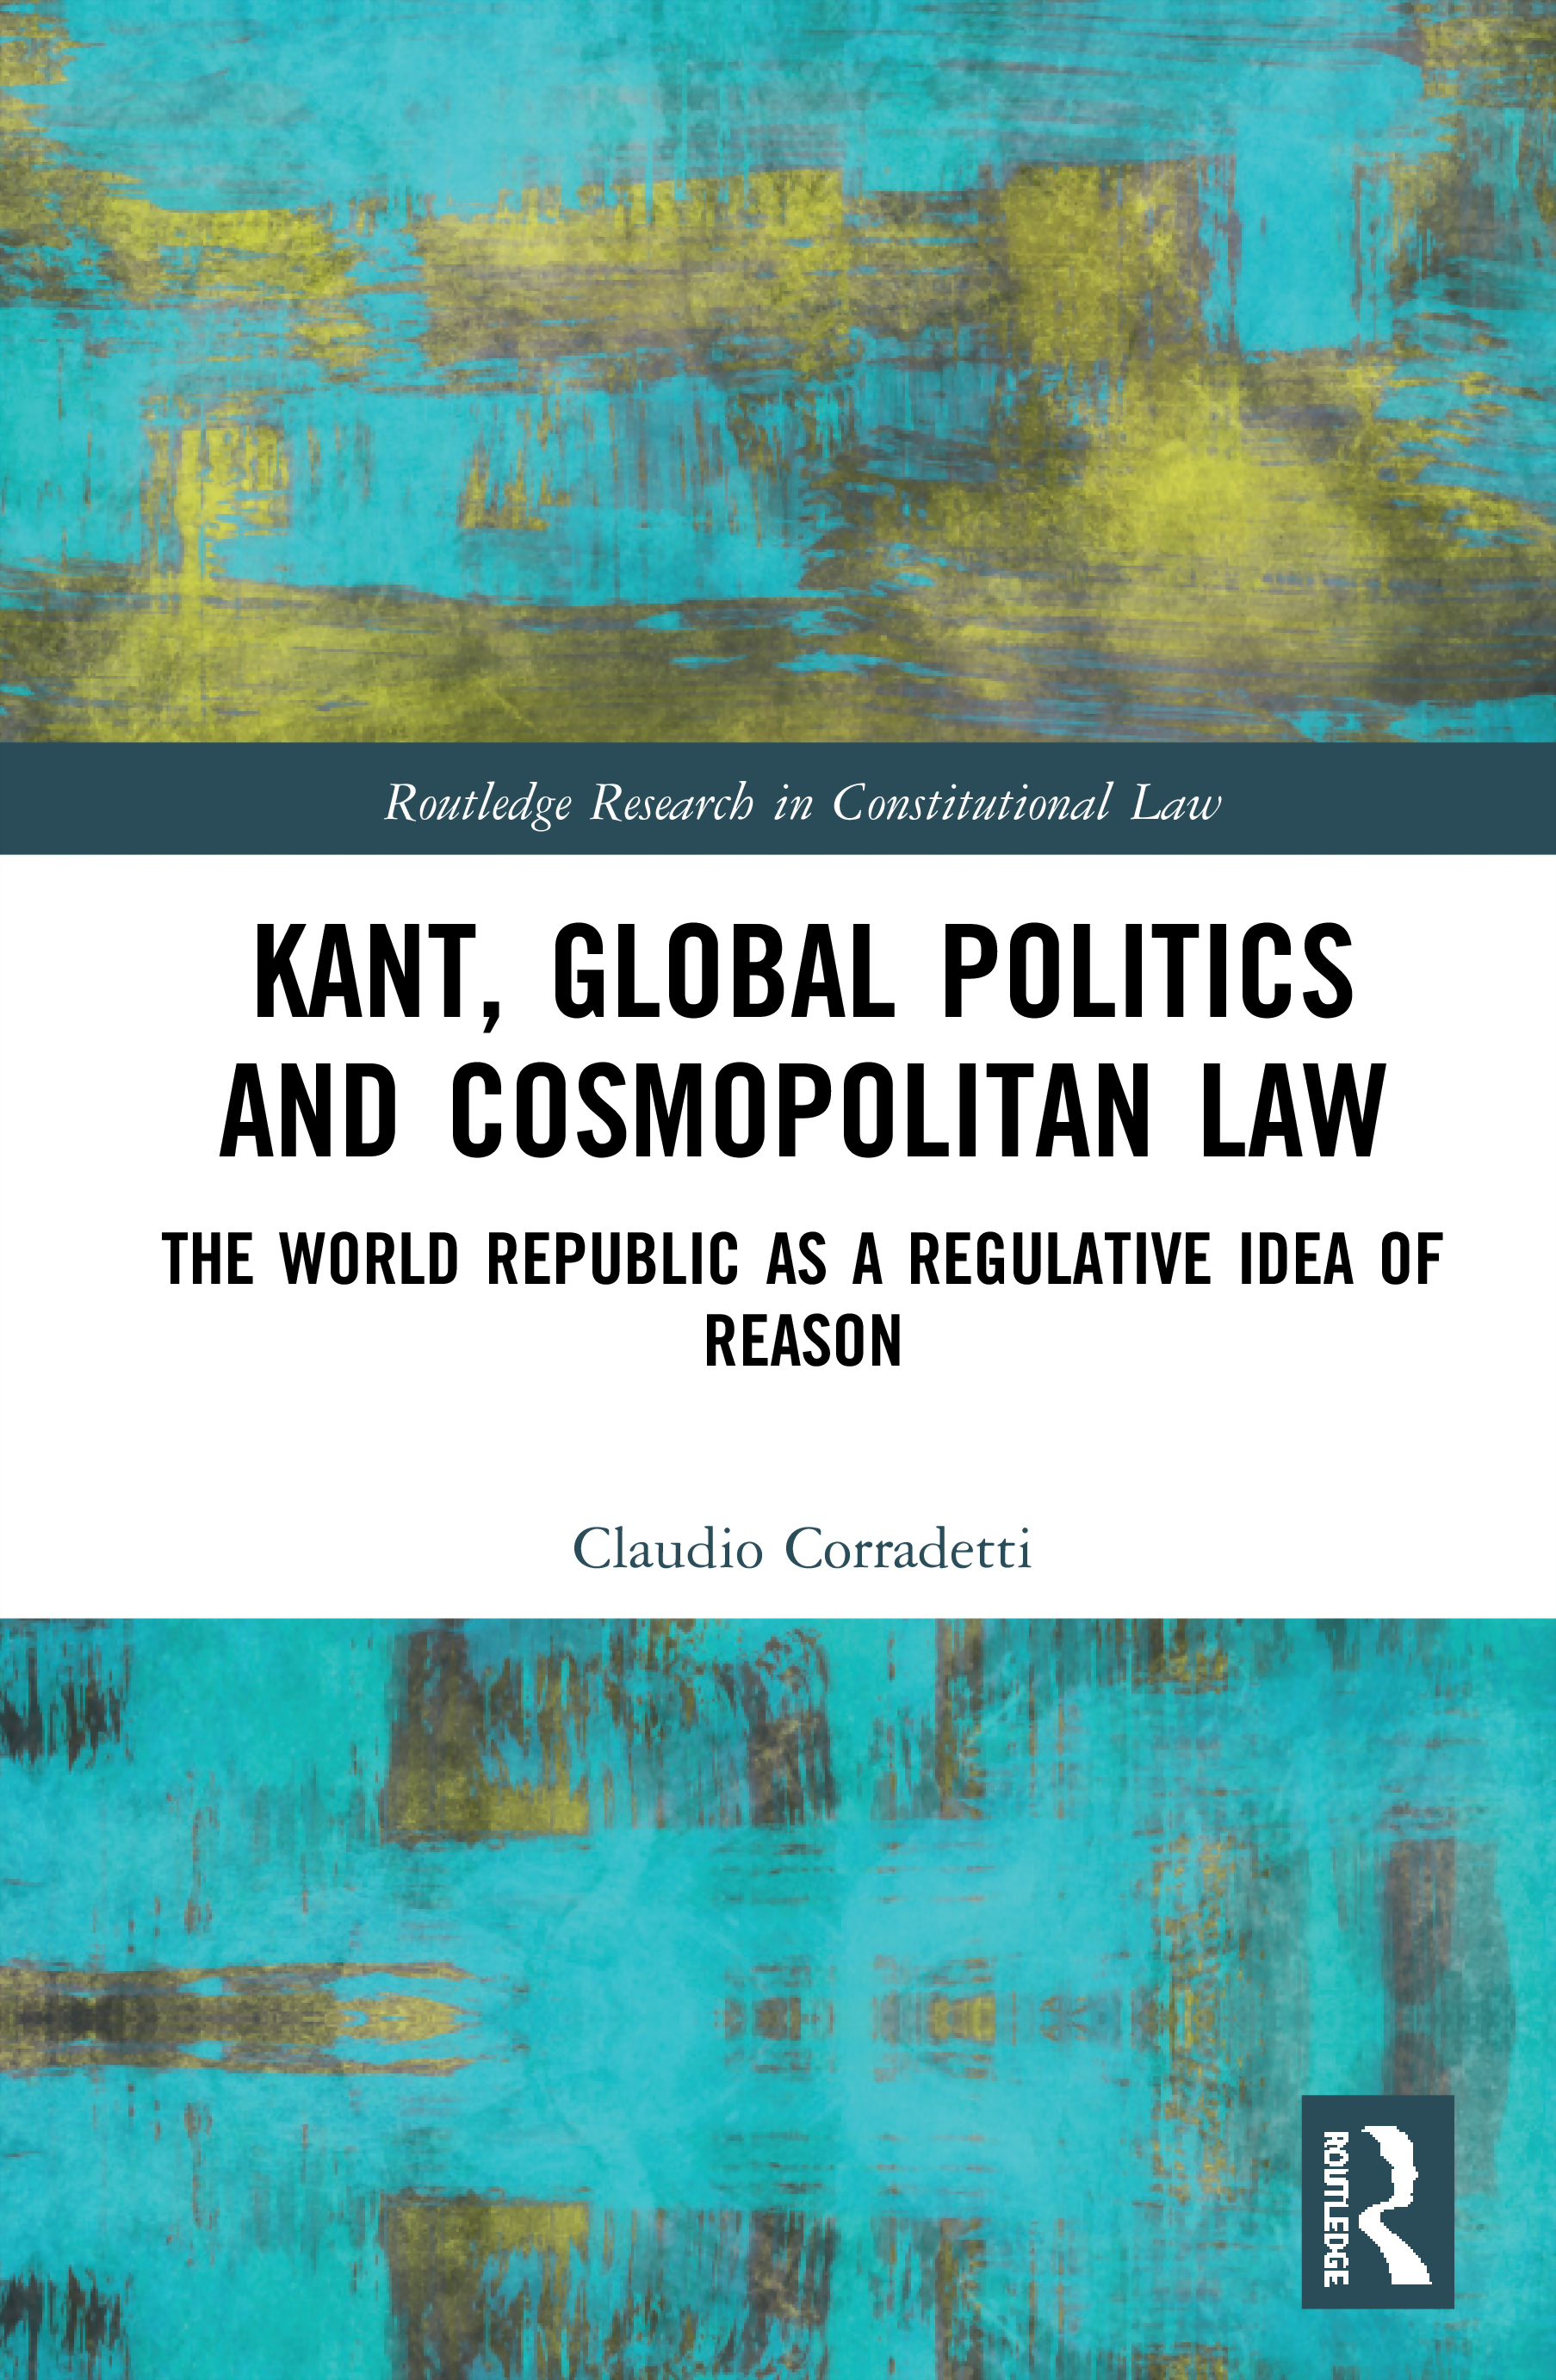 Kant, Global Politics and Cosmopolitan Law: The World Republic as a Regulative Idea of Reason book cover